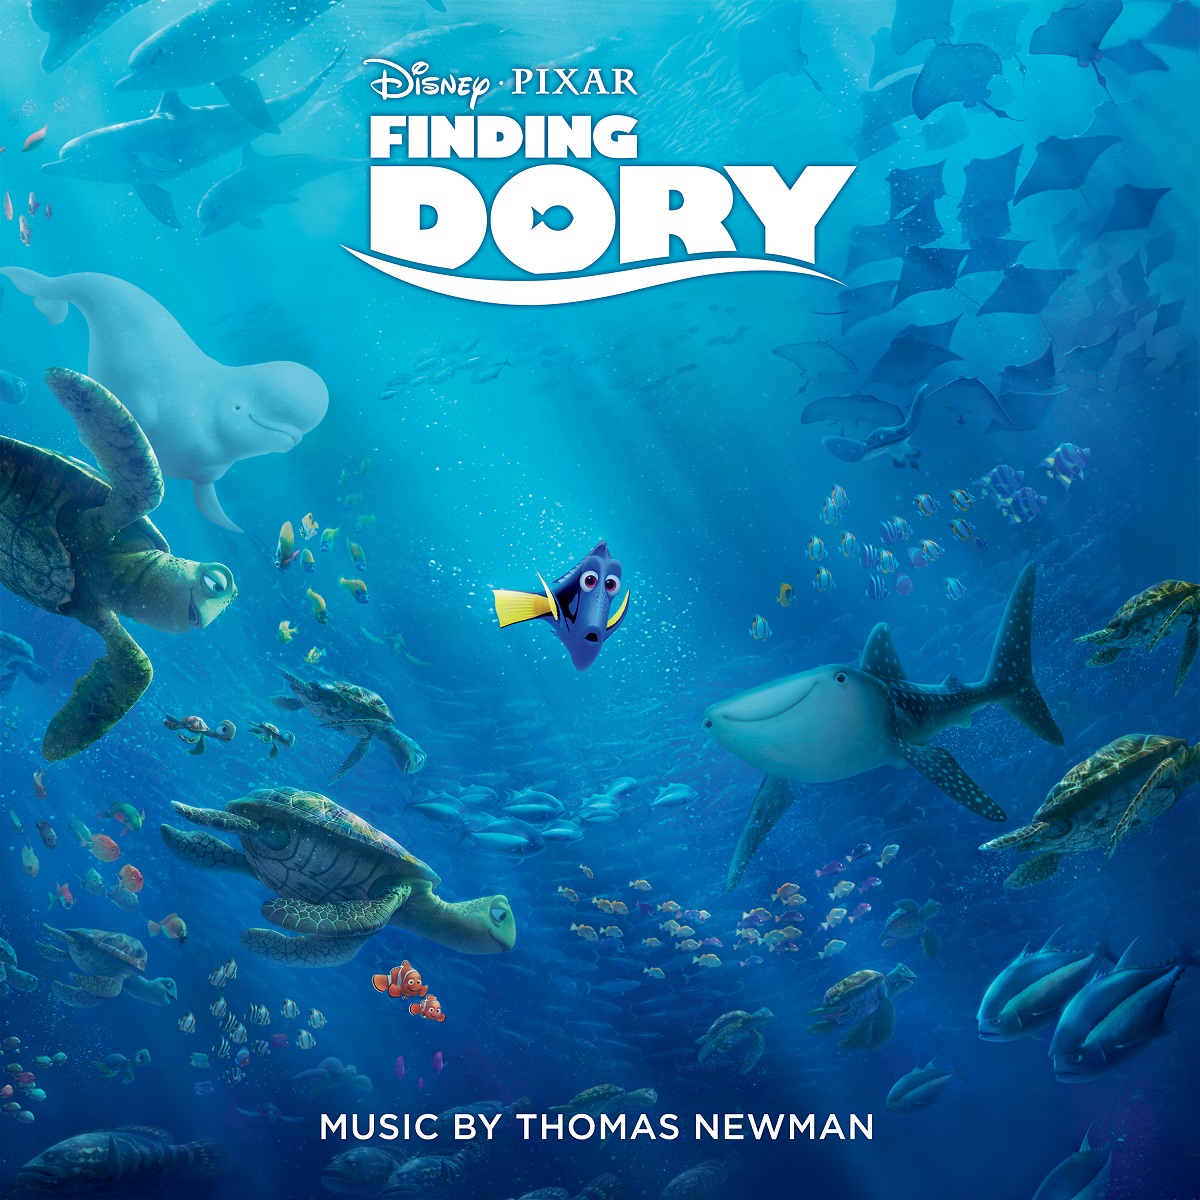 FINDING DORY(映画道理を探して) -  OST(THOMAS NEWMAN)